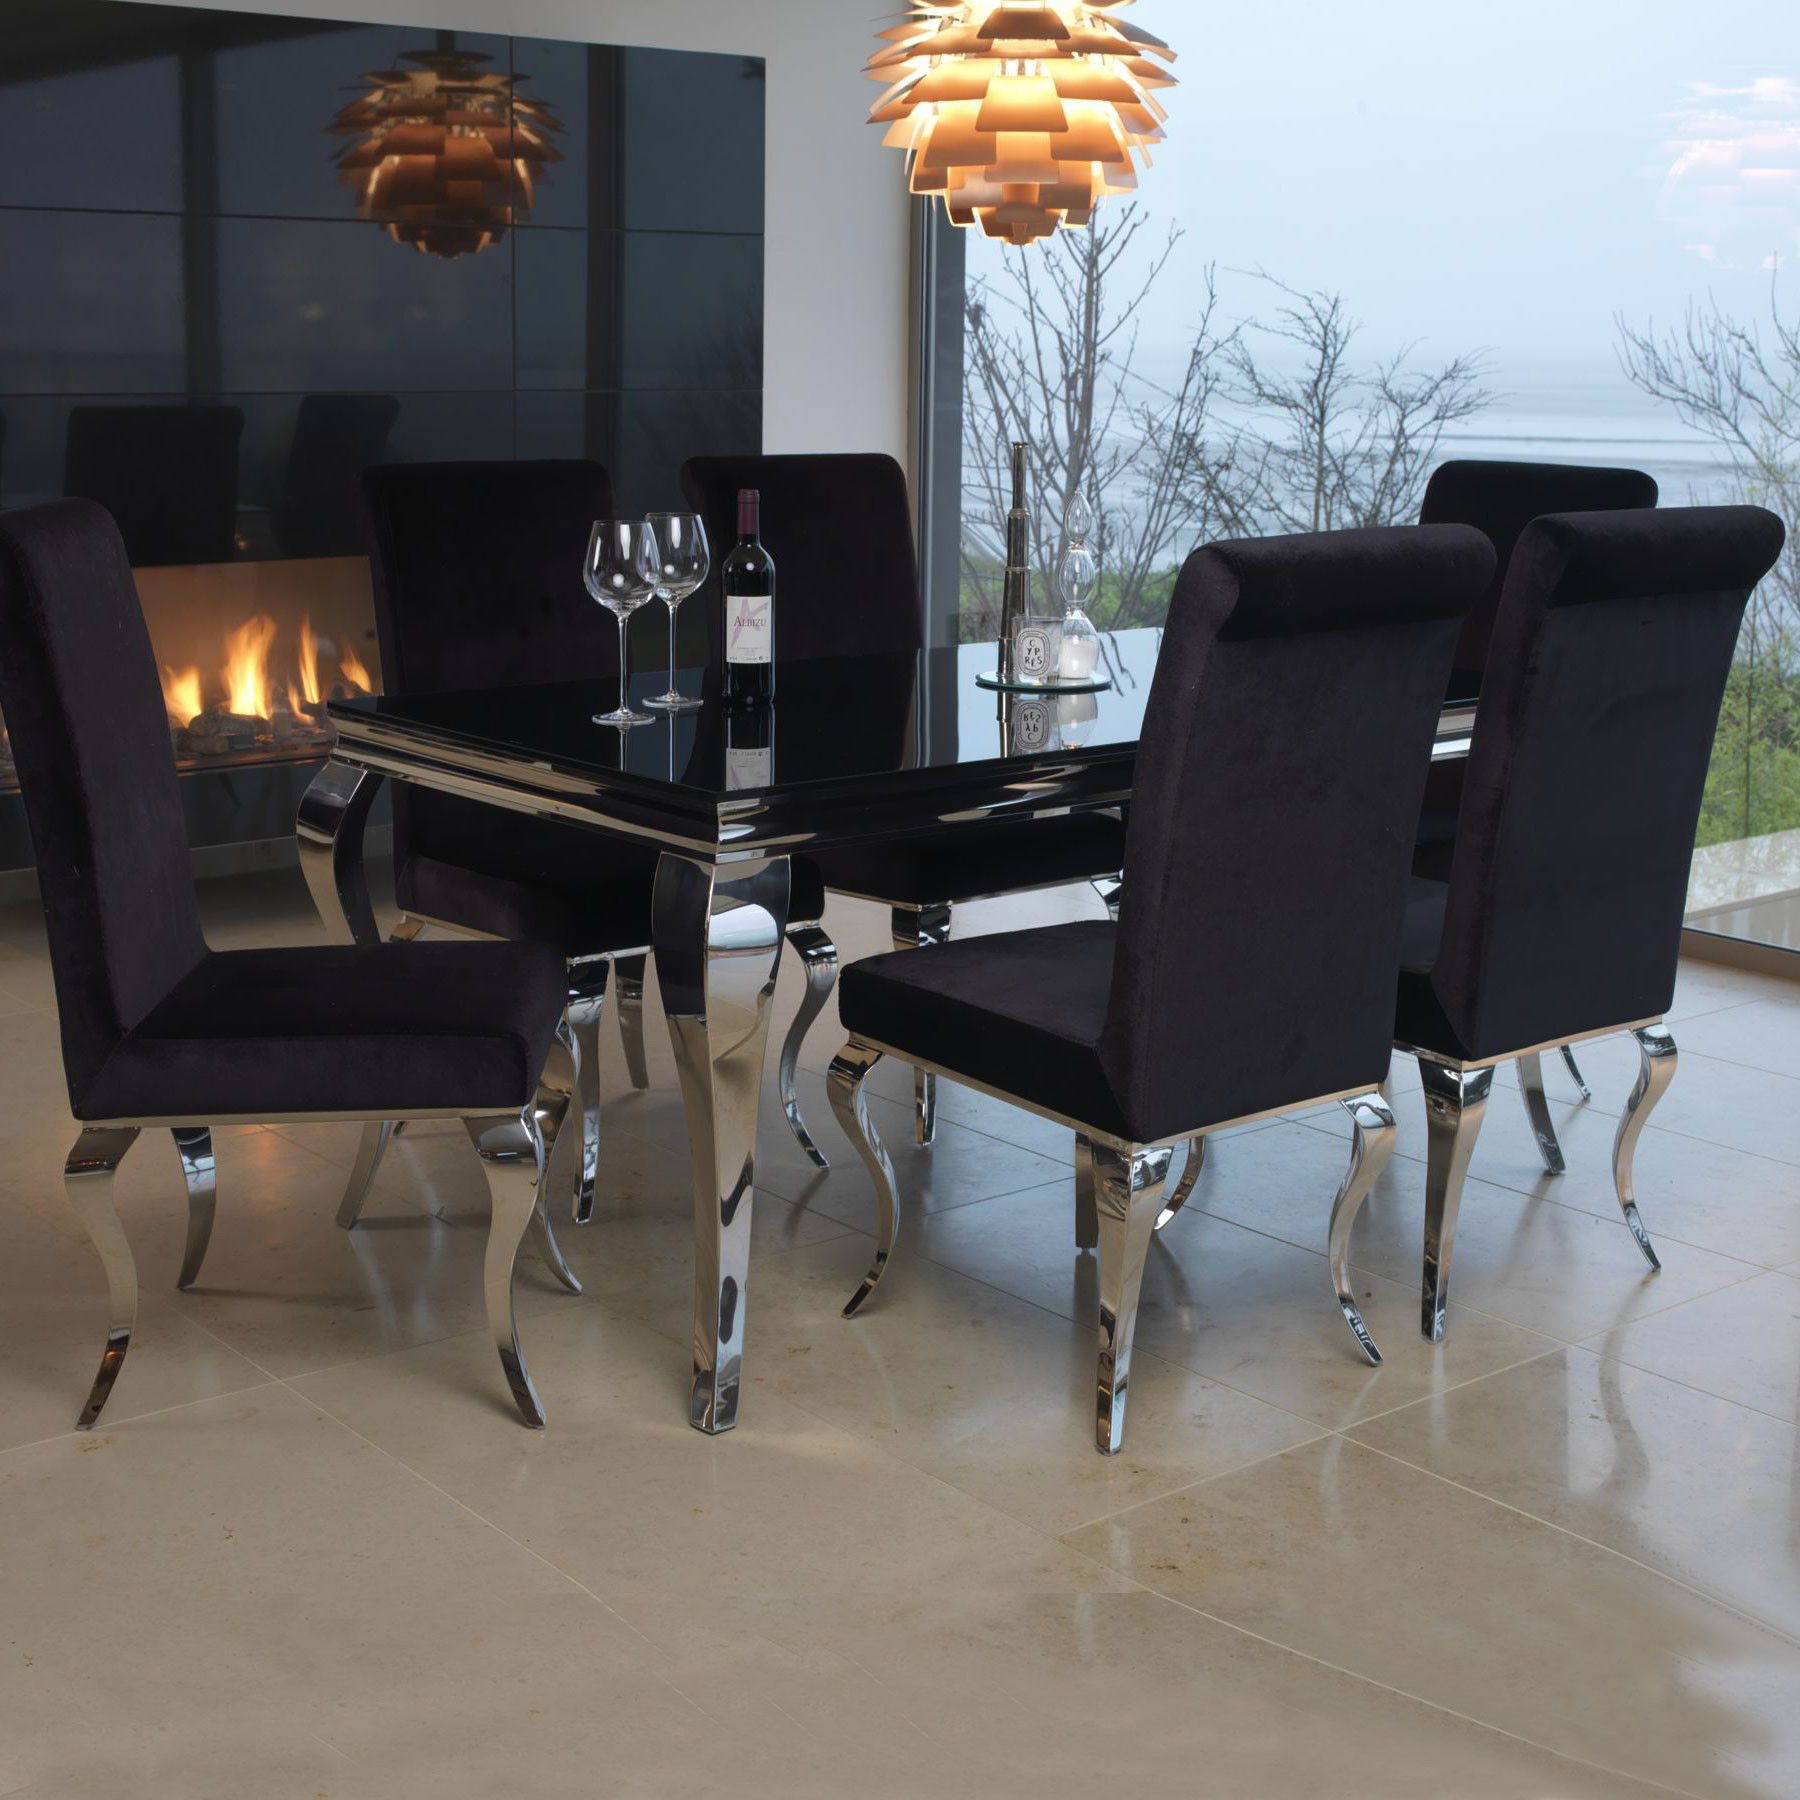 Louis Black Glass 160cm Dining Table And 6 Chairs Dining Room Table Set Dining Table Chairs Chrome Dining Table